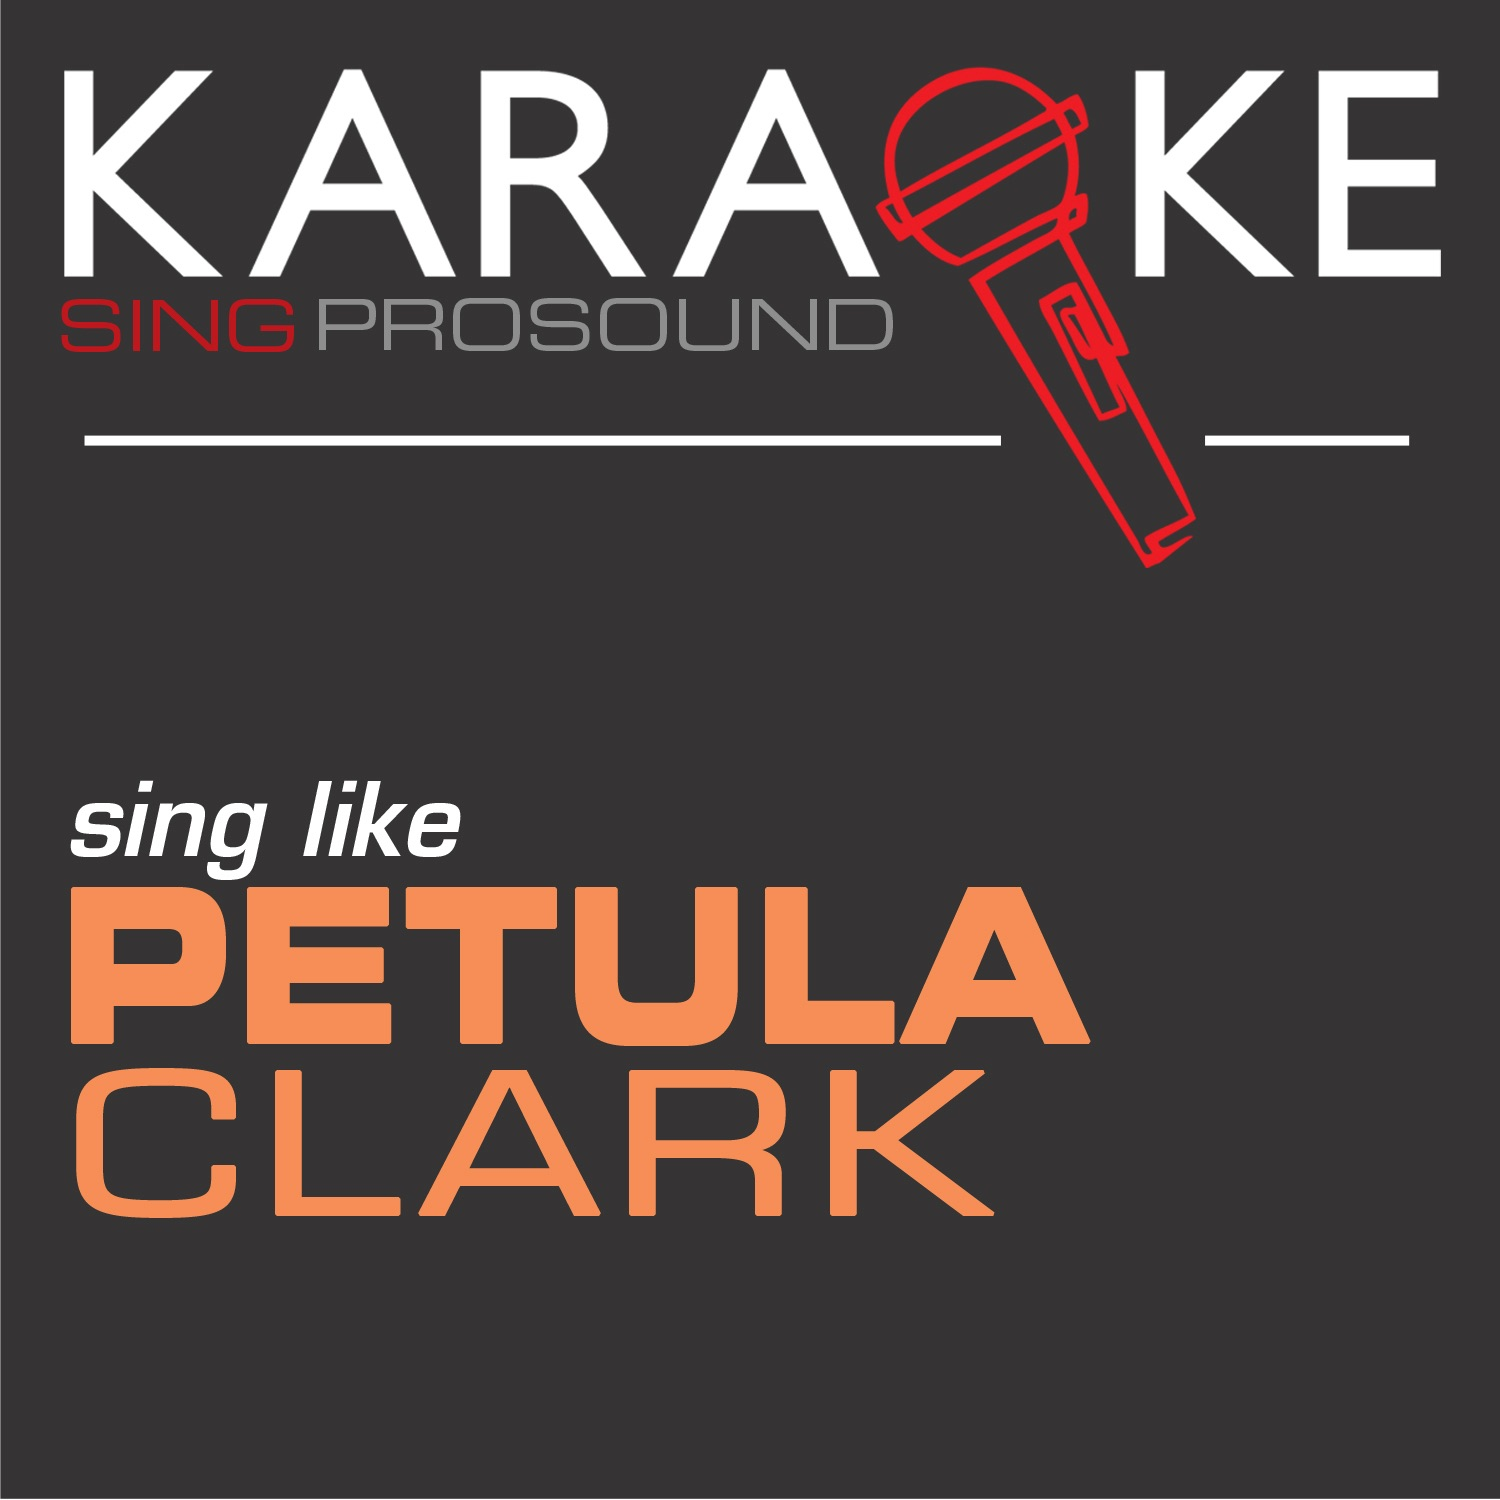 Karaoke in the Petula Clark - Single